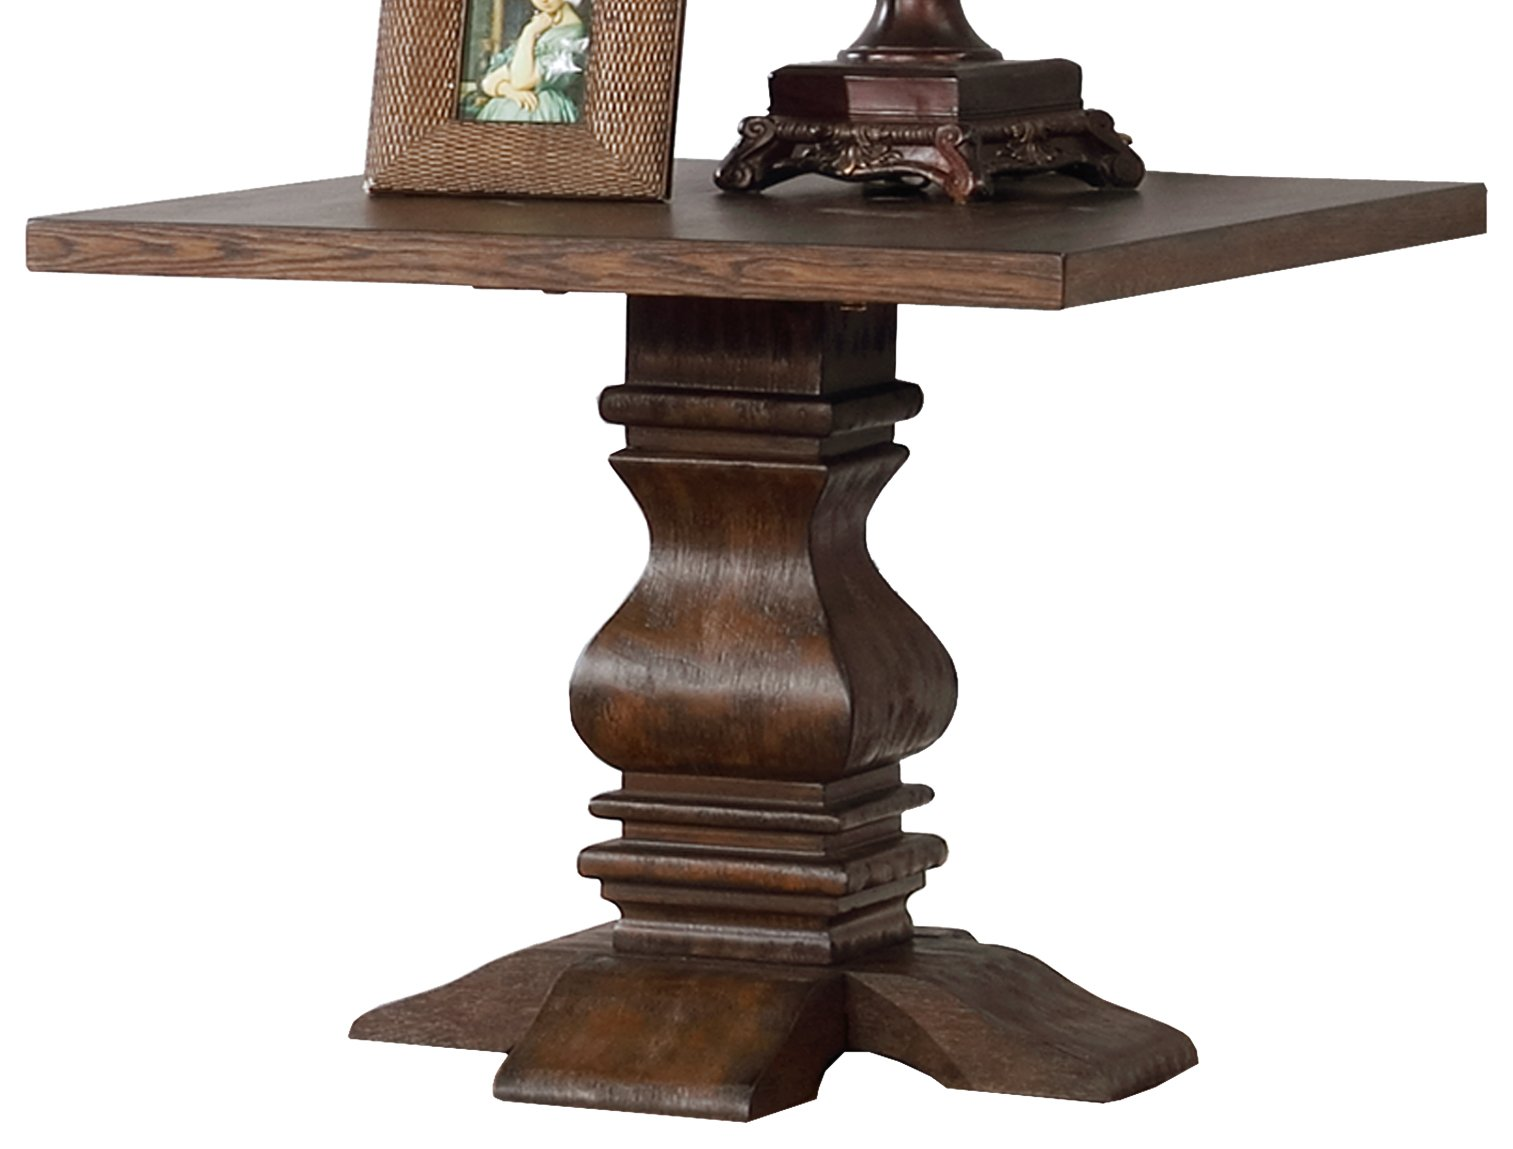 Best Quality Furniture CT421 Walnut End Table by Best Quality